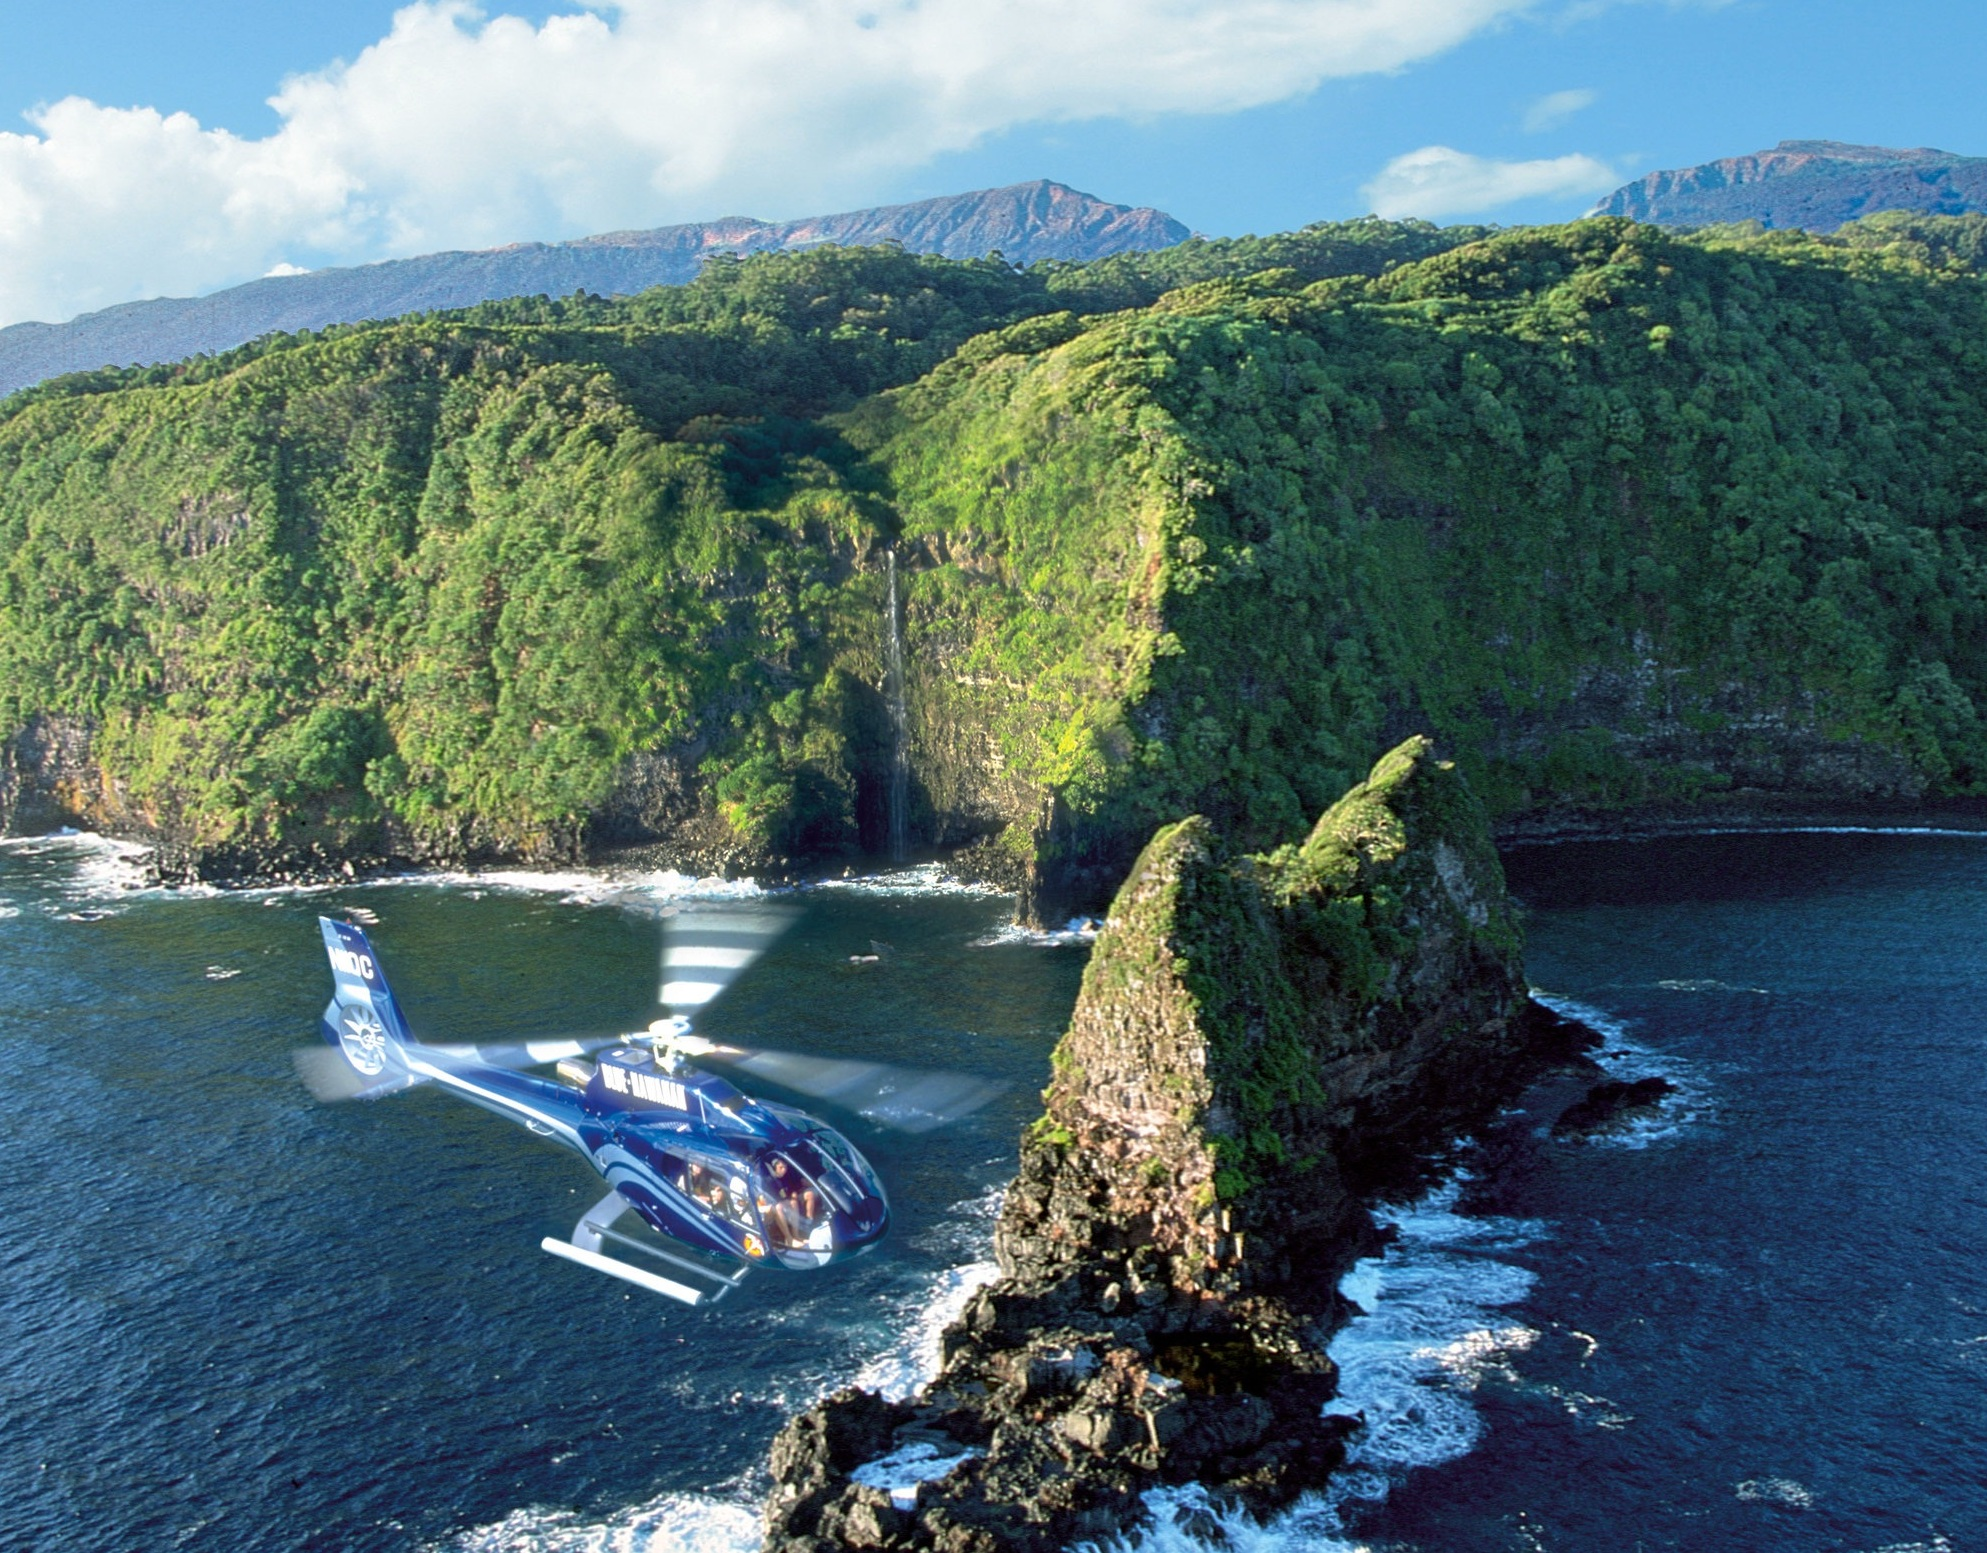 Jurassic Rock - Keopuka is often called Jurassic Rock because it appeared in the beginning scene of Jurassic Park. The best way to see this area is by air because there is a beautiful waterfall behind which you cannot see from land. The Complete Island helicopter Tour features this scenic area.